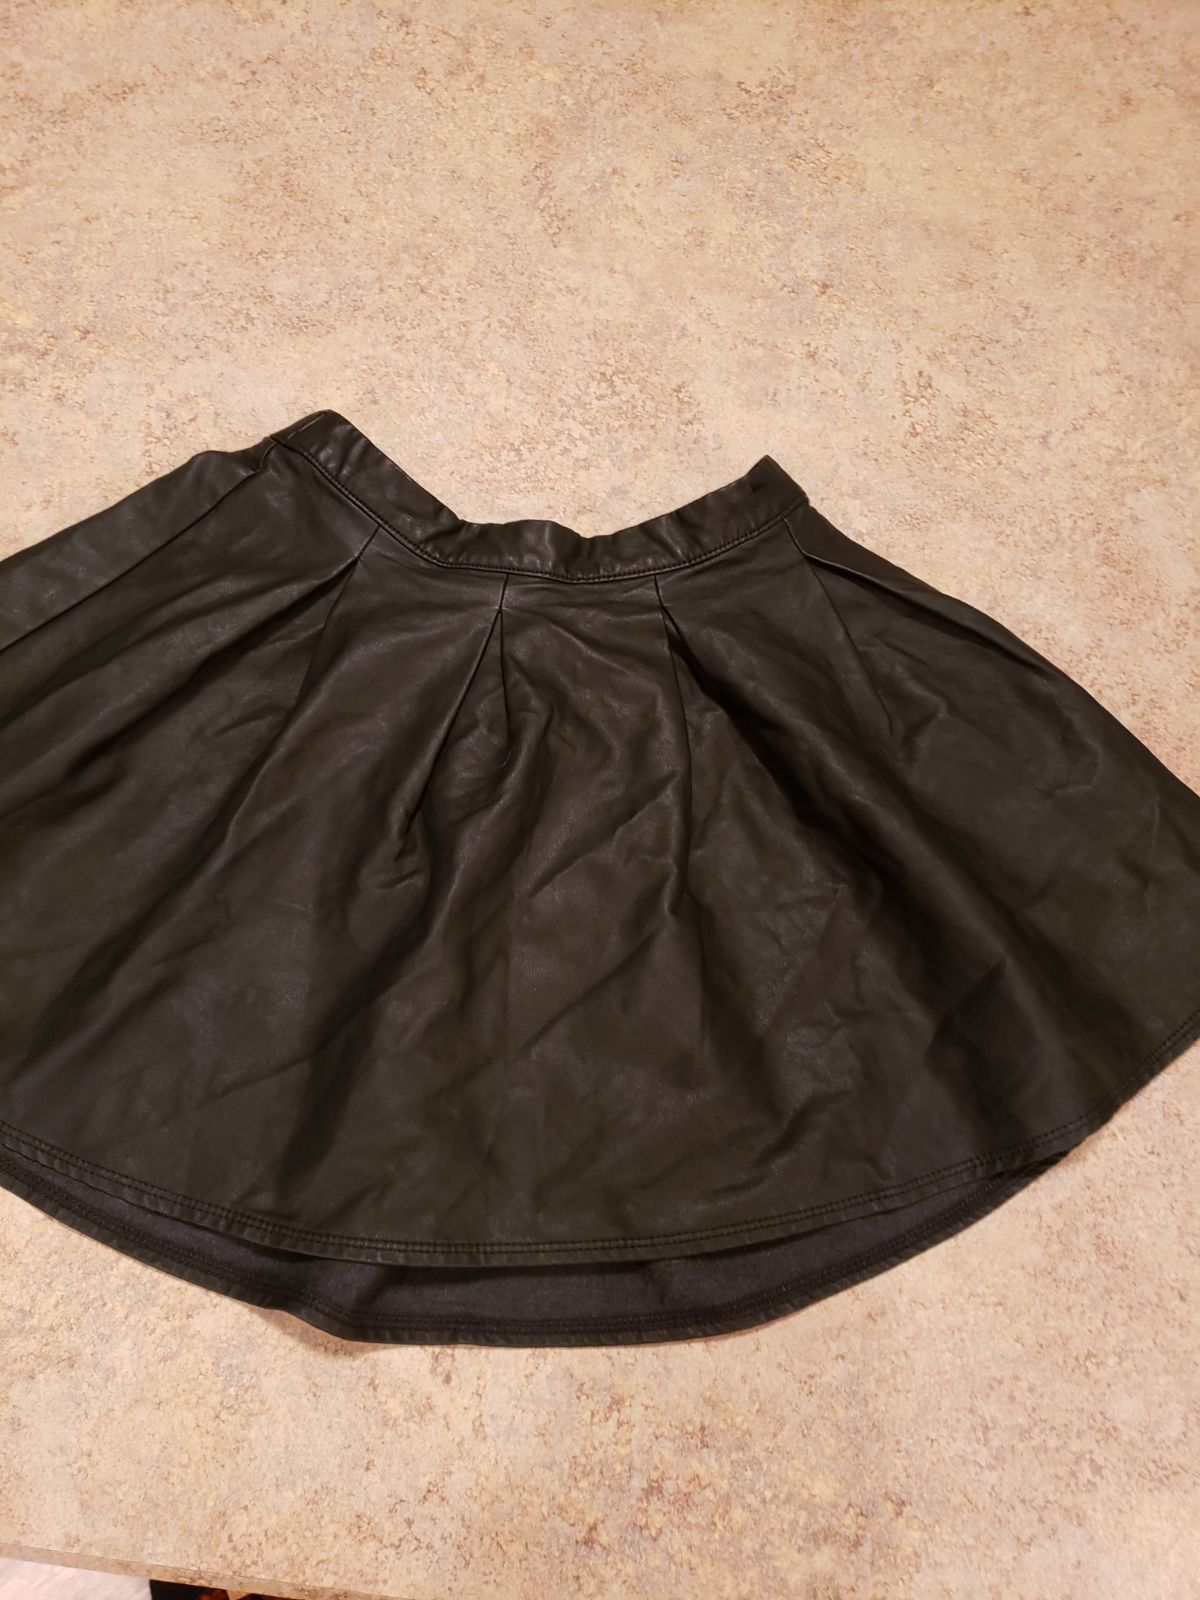 Abercrombie Kids Faux Leather Skirt